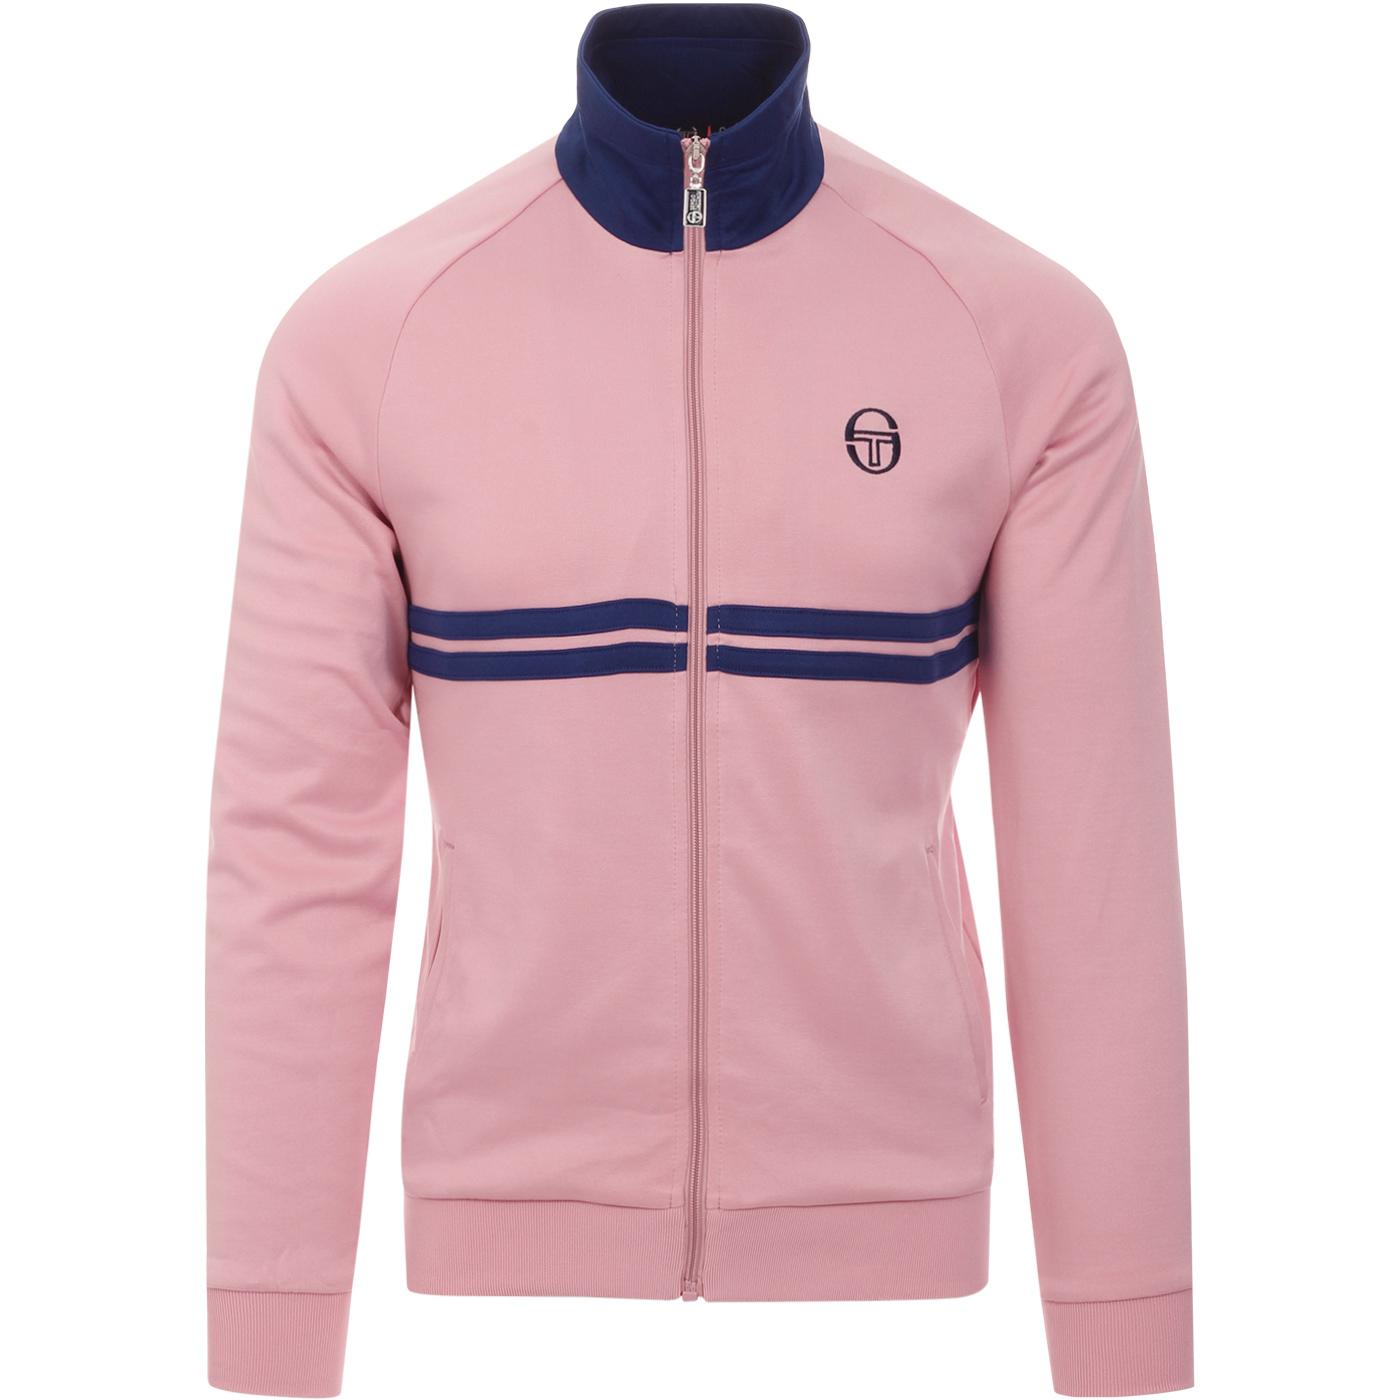 Dallas SERGIO TACCHINI Retro 80s Track Top PB